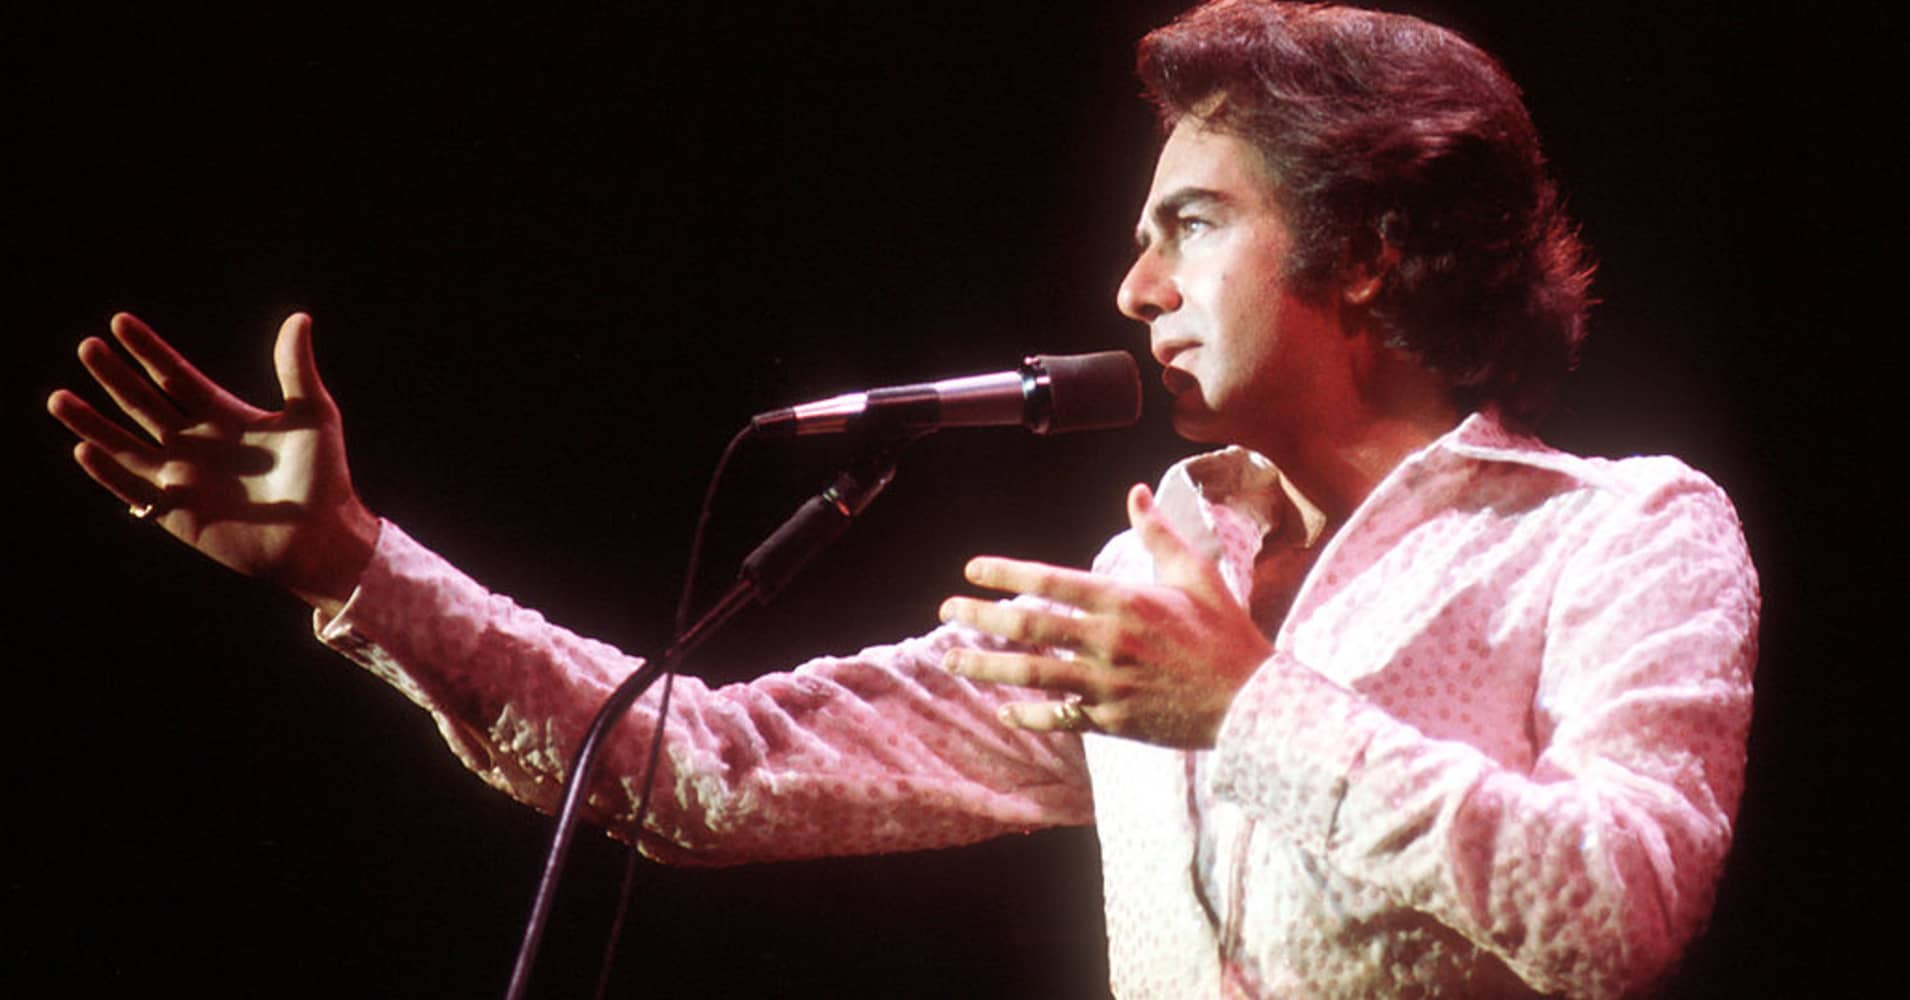 Neil Diamond was my childhood idol: Dollar Shave Club founder Michael Dubin